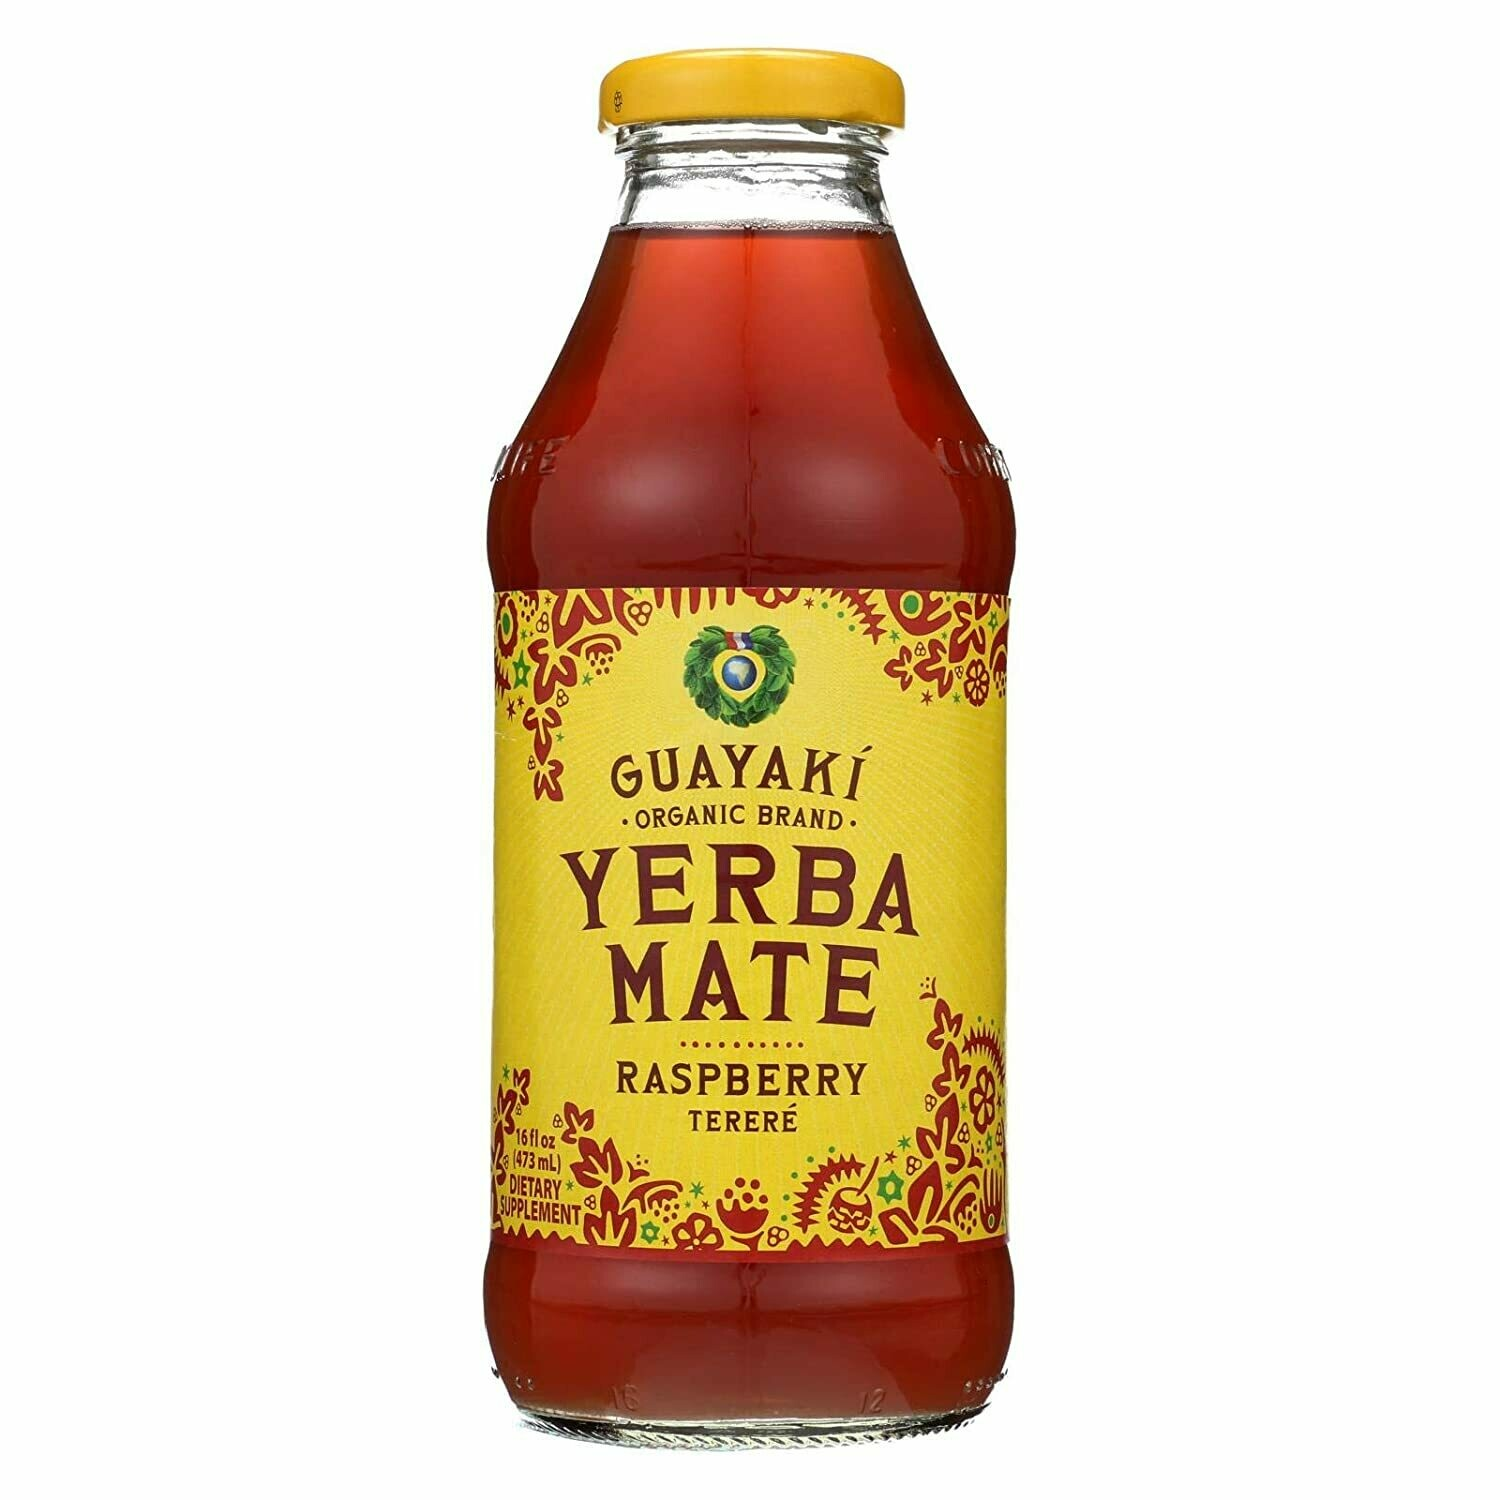 Guayaki Yerba Mate Raspberry Bottle 16oz